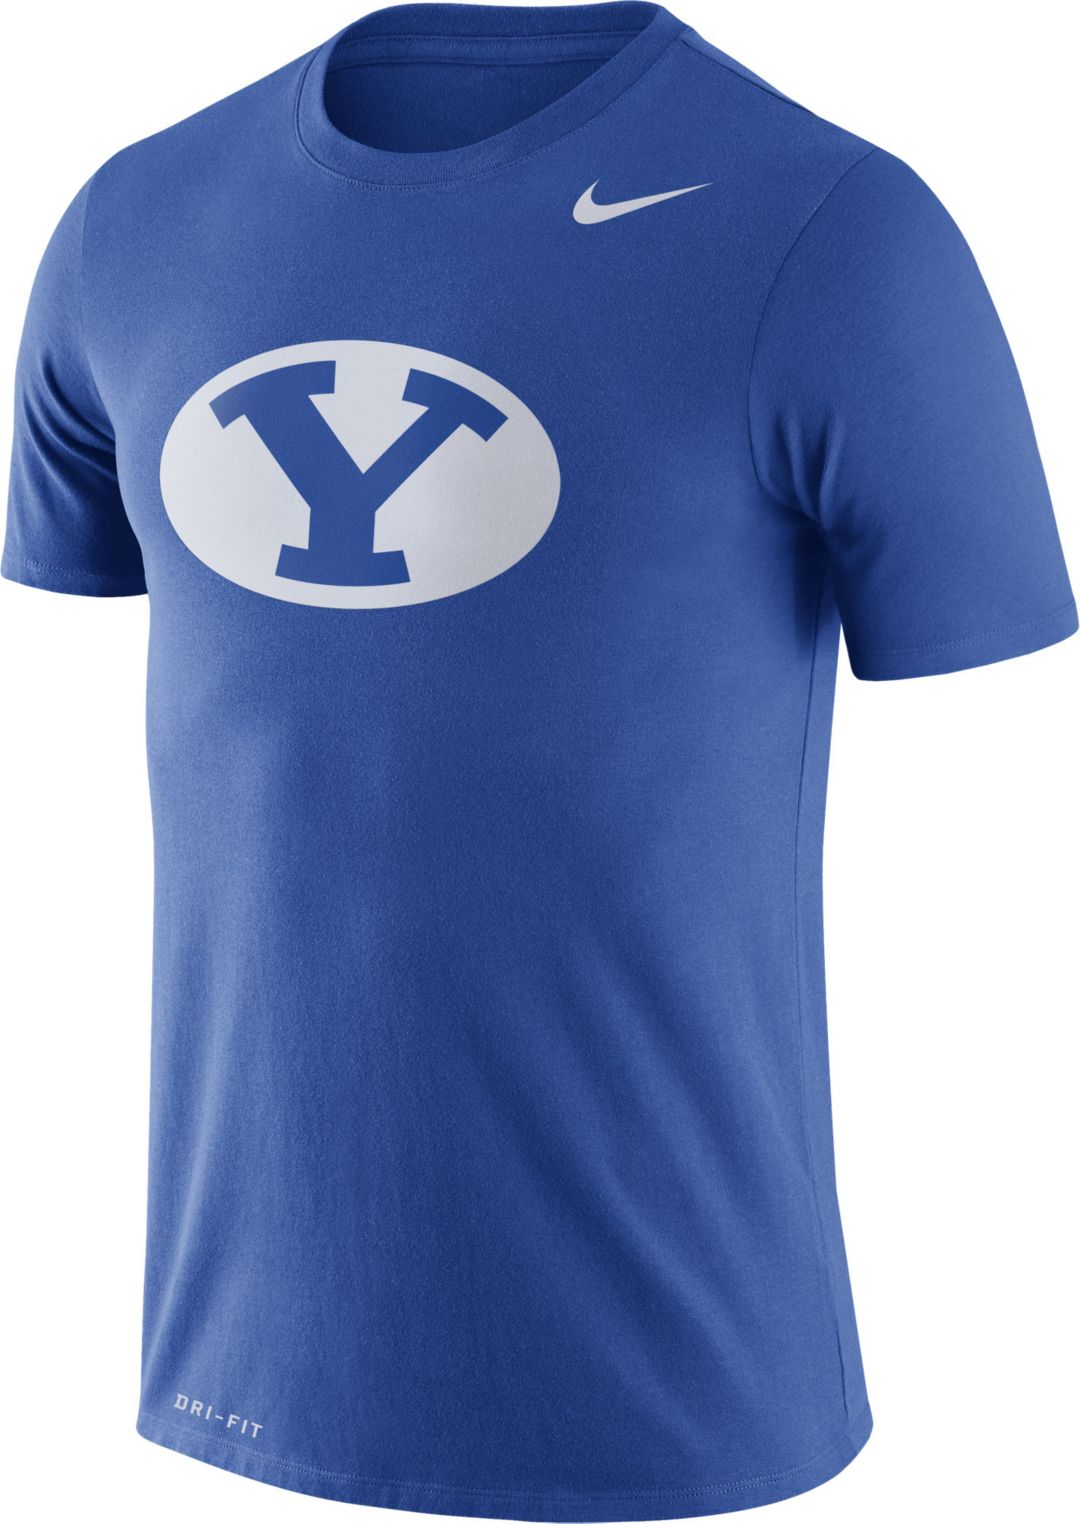 00185632a1f Nike Men's BYU Cougars Blue Logo Dry Legend T-Shirt